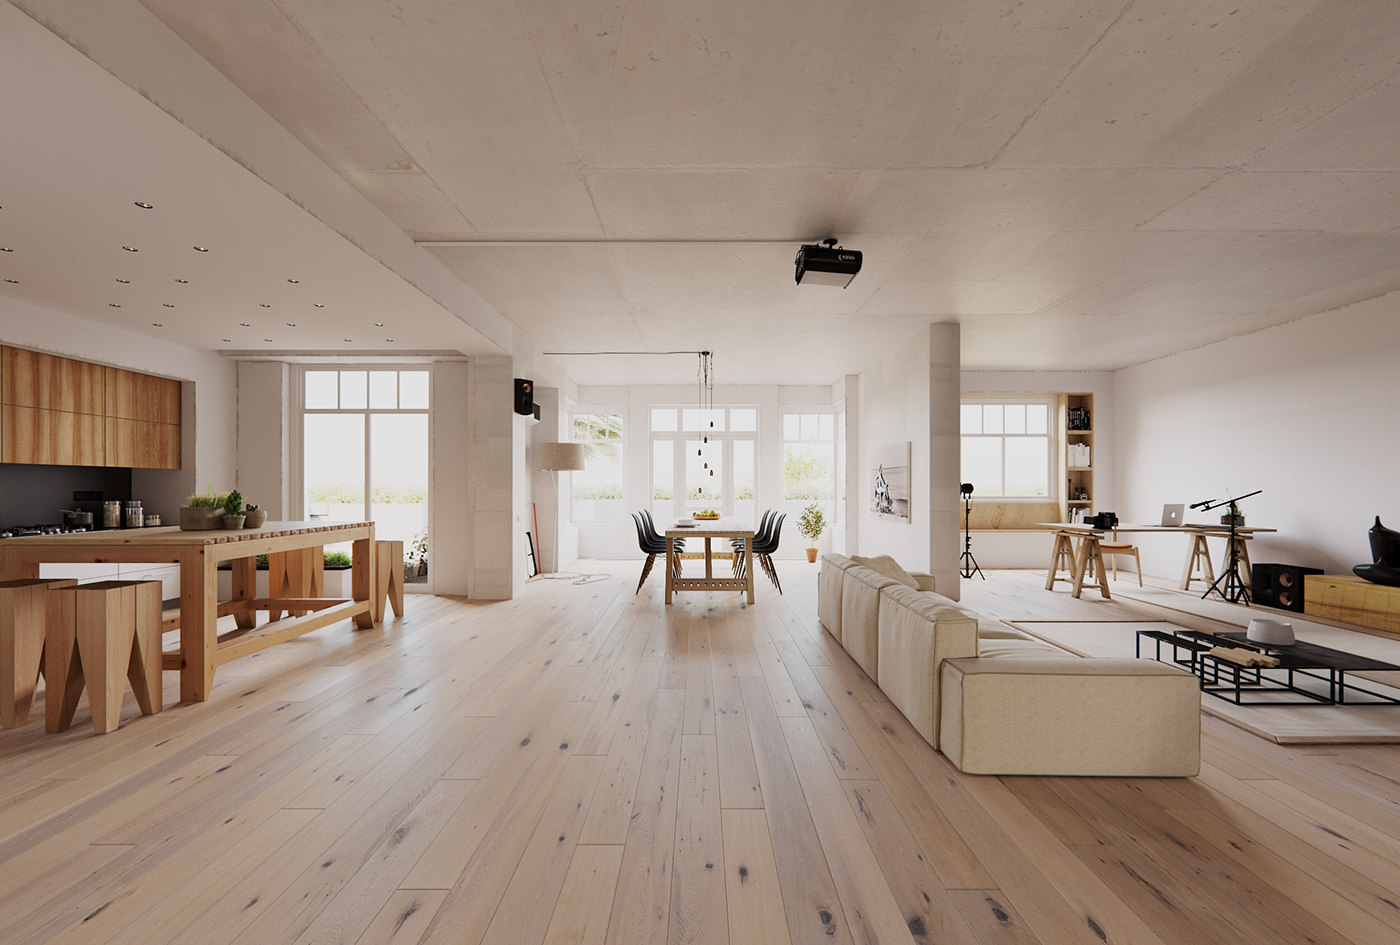 cgi remake of 16th apartment by 2b group on behance